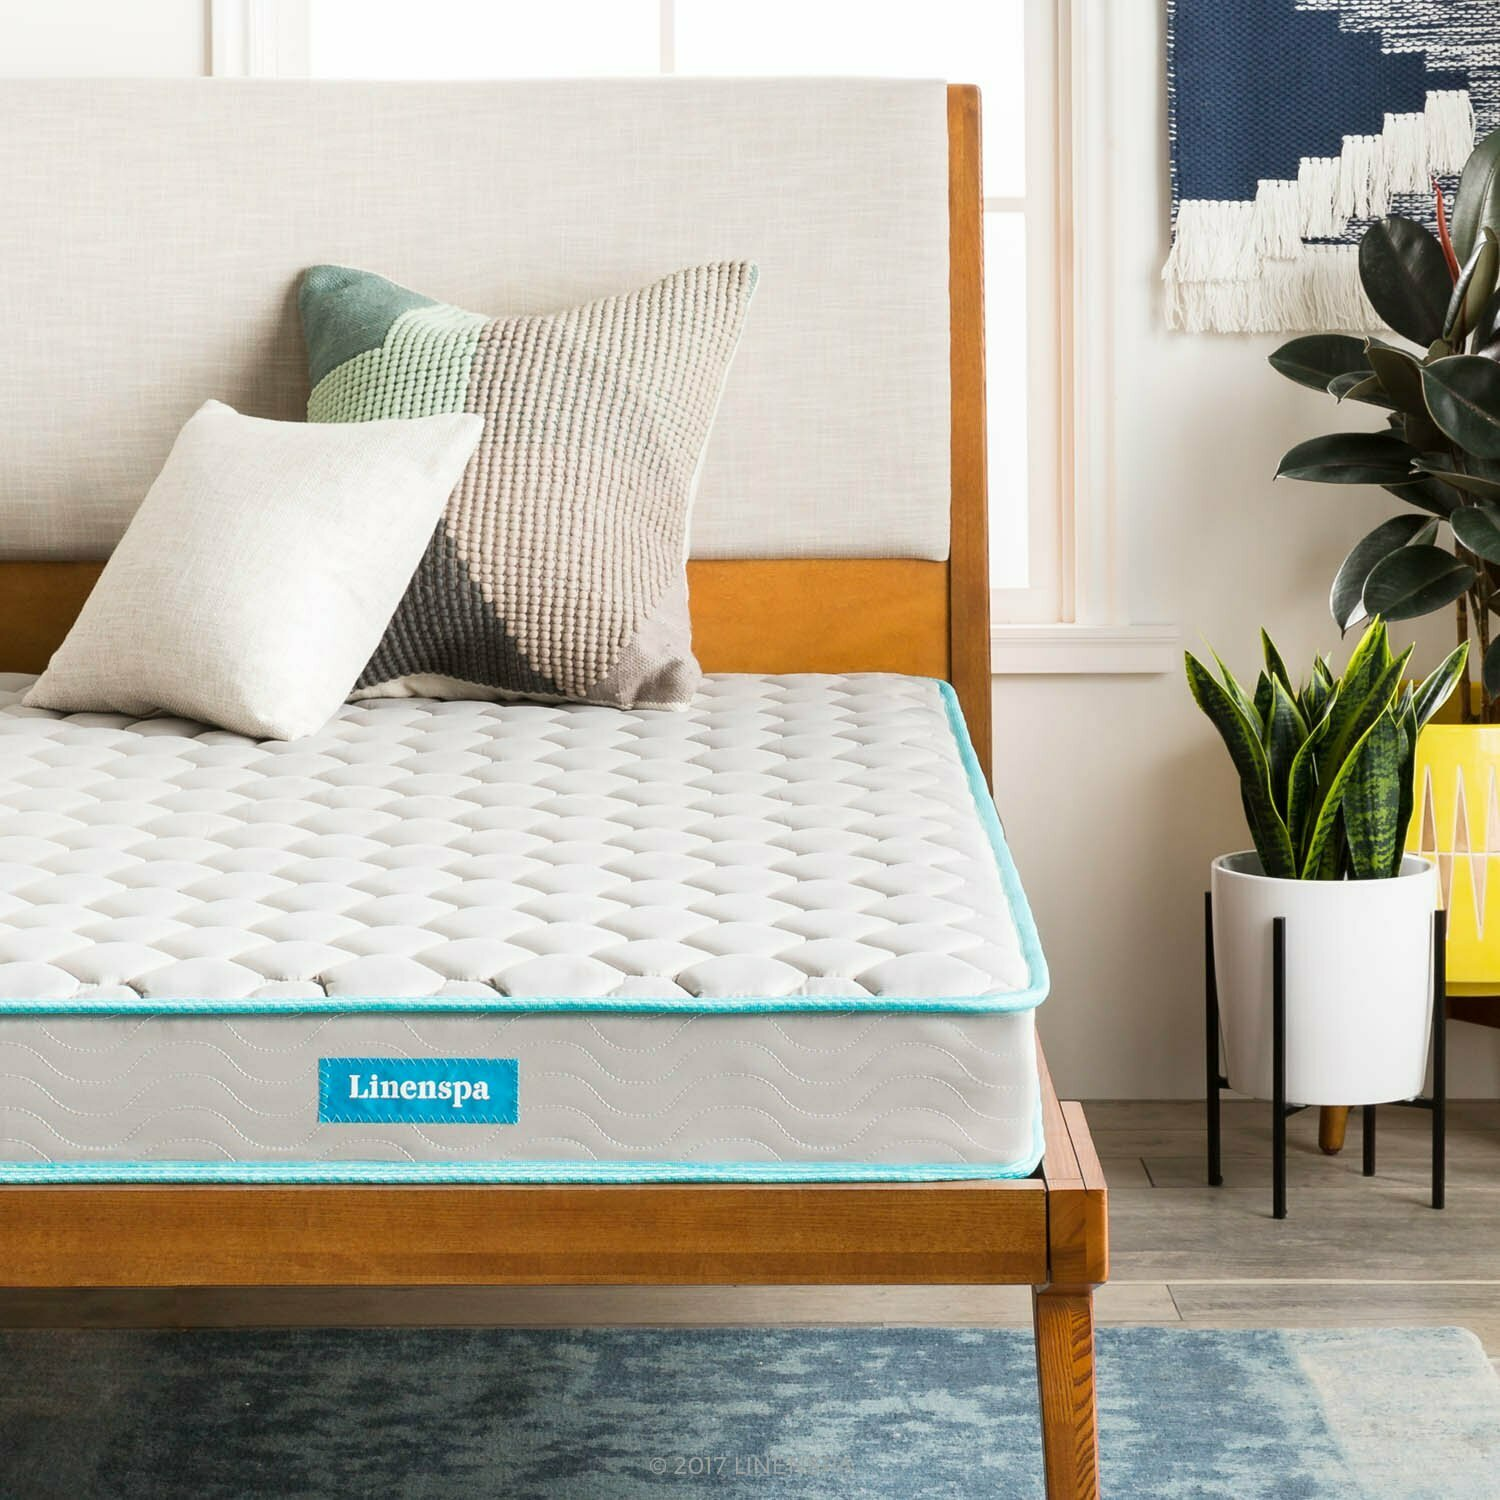 """Linenspa 6"""" Traditional Innerspring Mattress-in-a-Box, Full"""